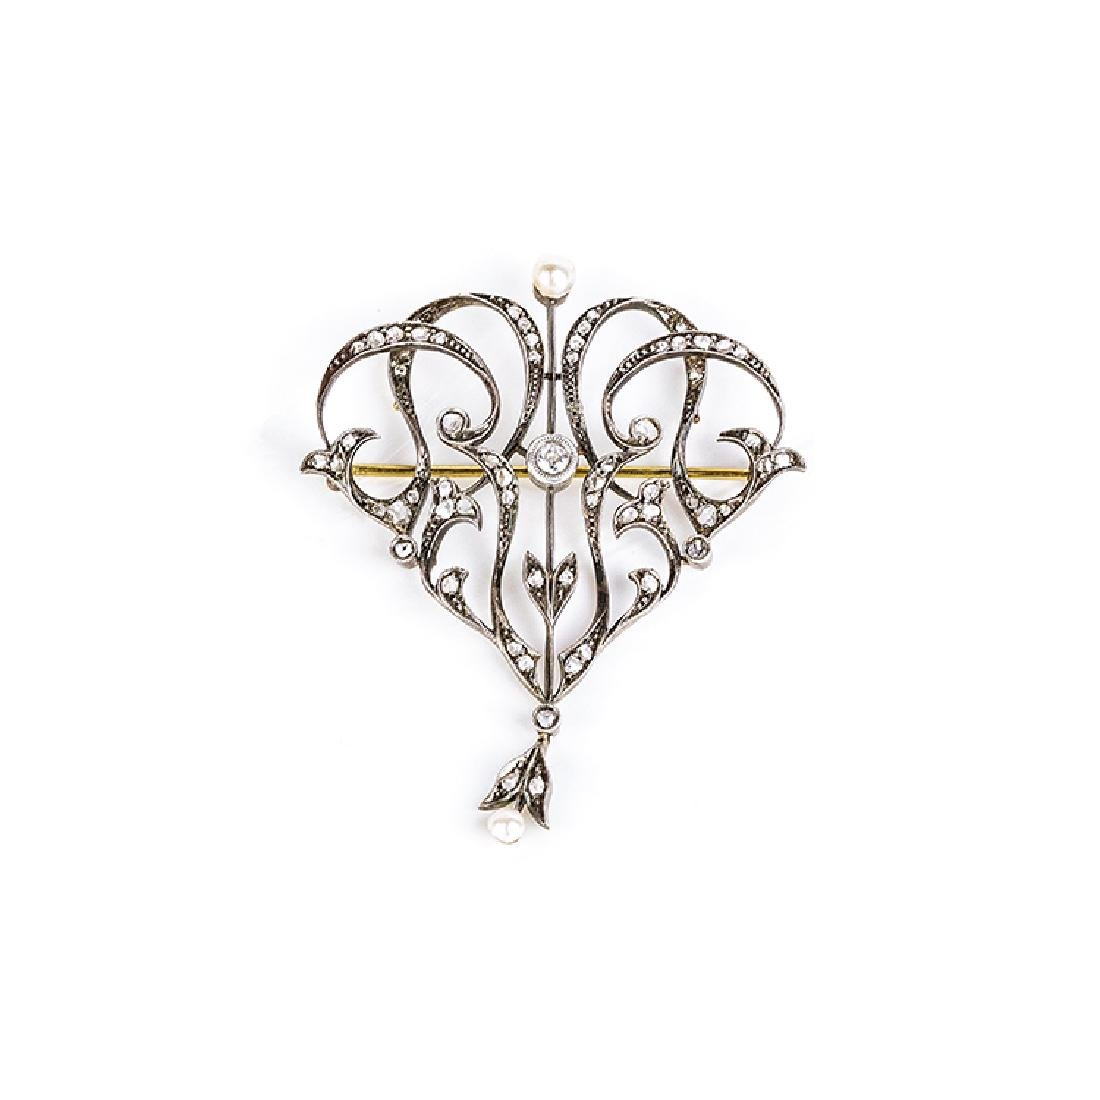 Liberty pendant/brooch with pearls and diamonds